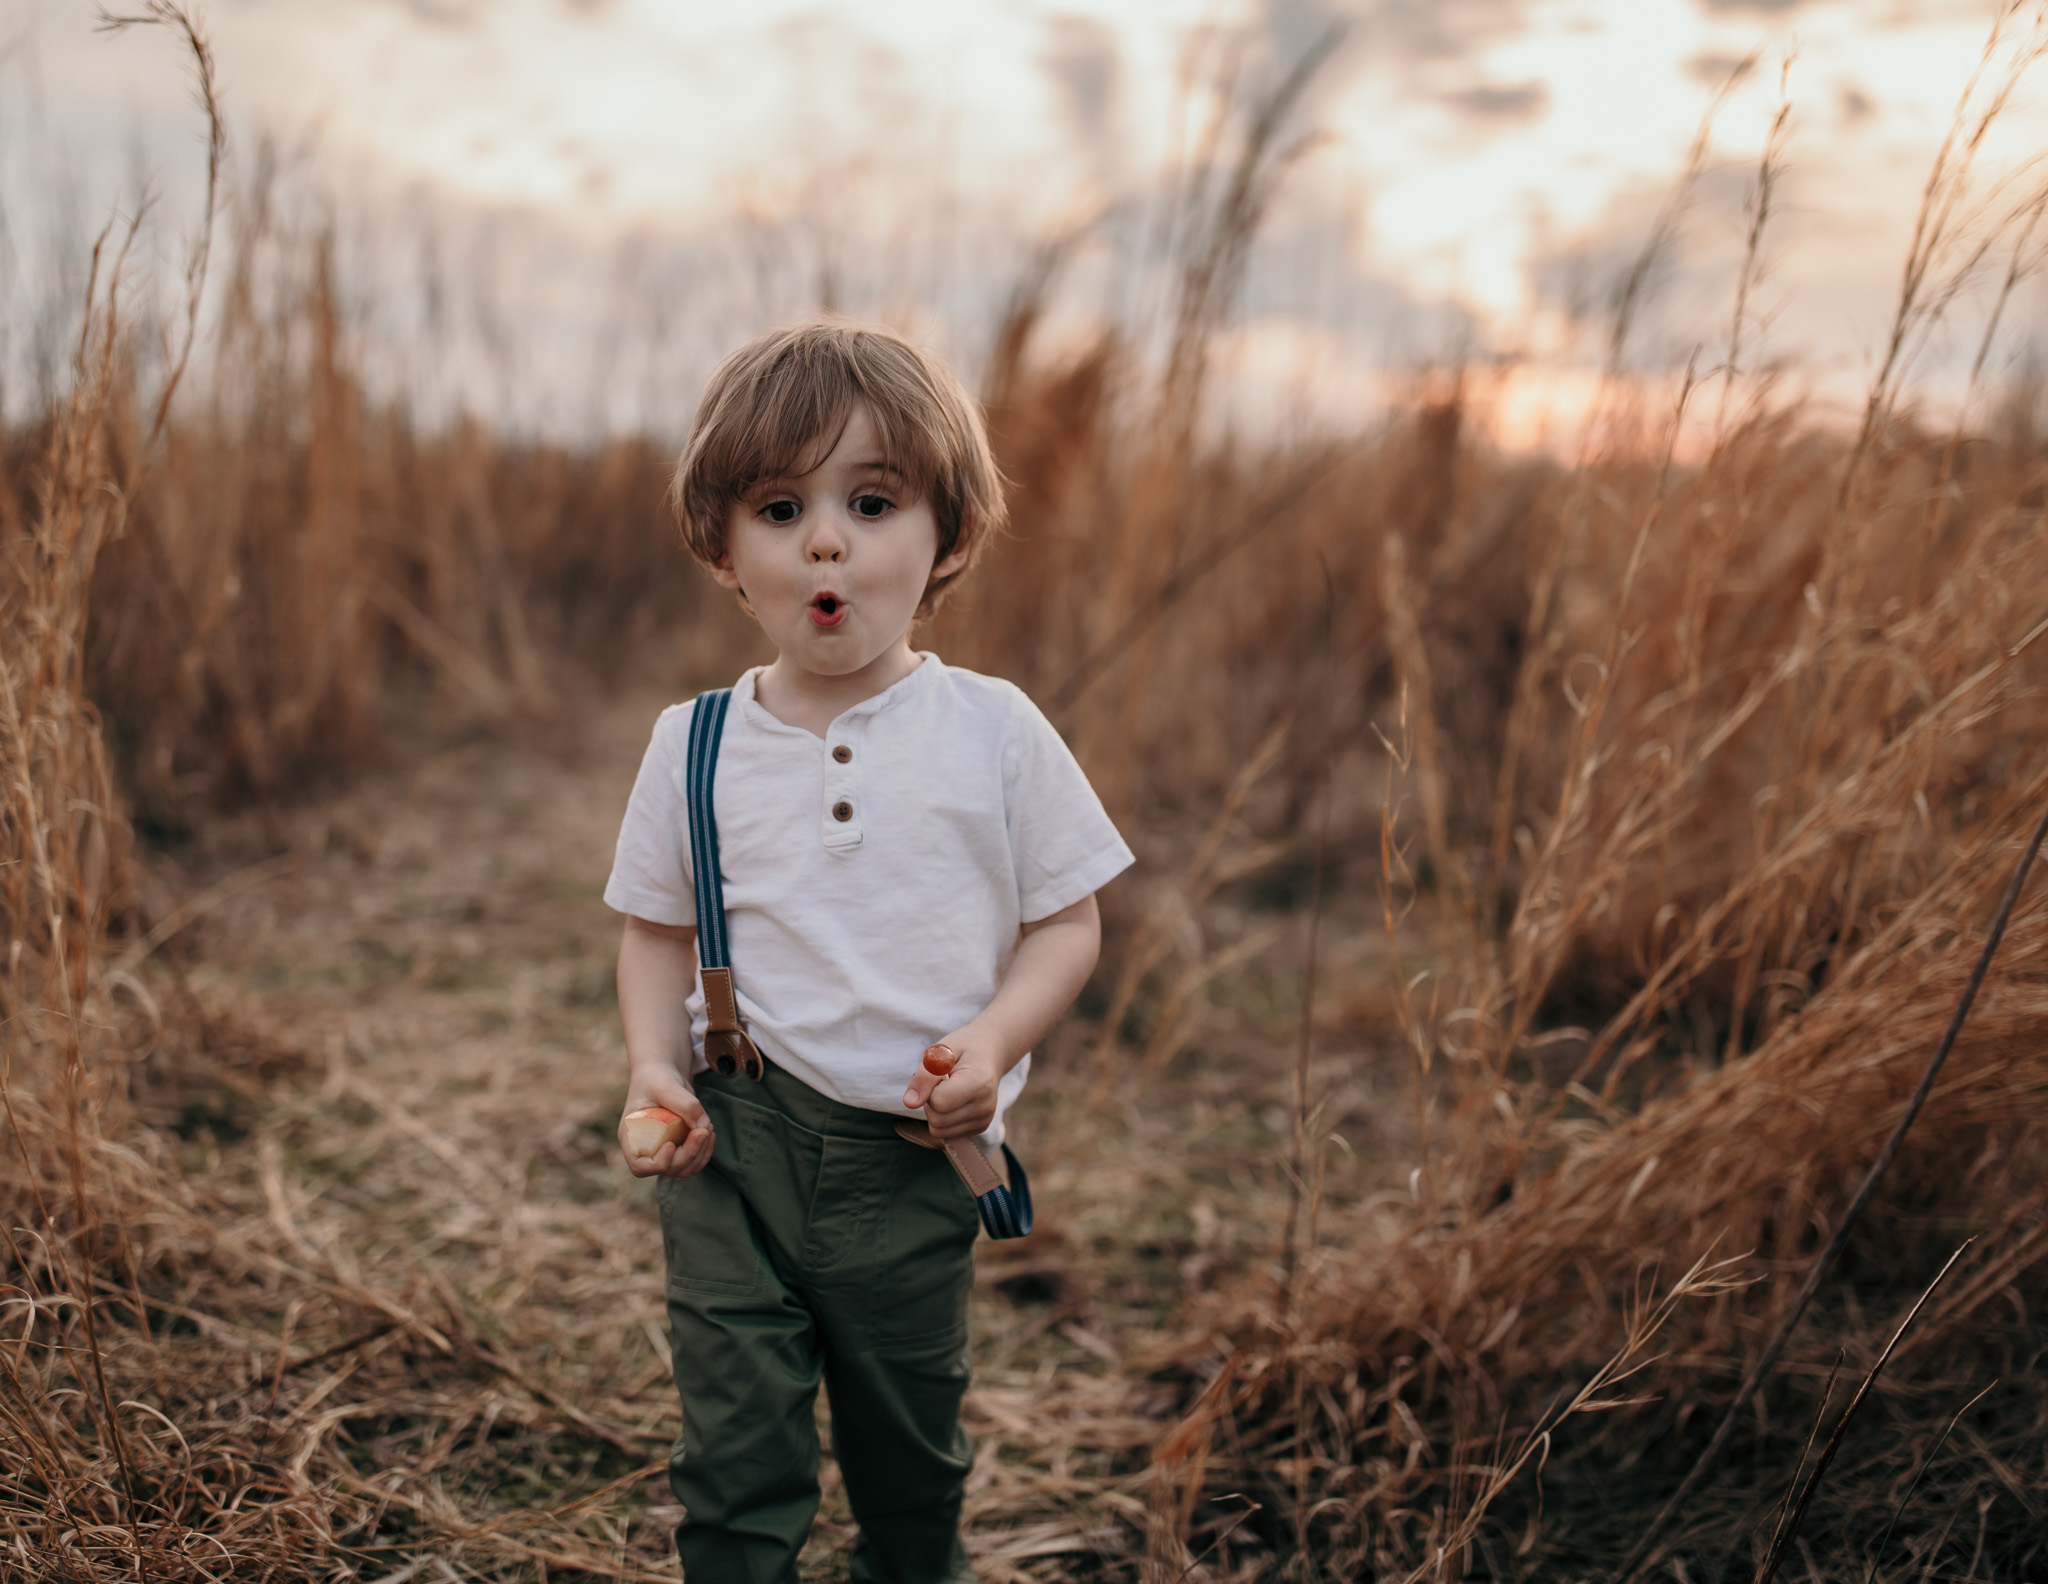 Young Boy Walking in Field